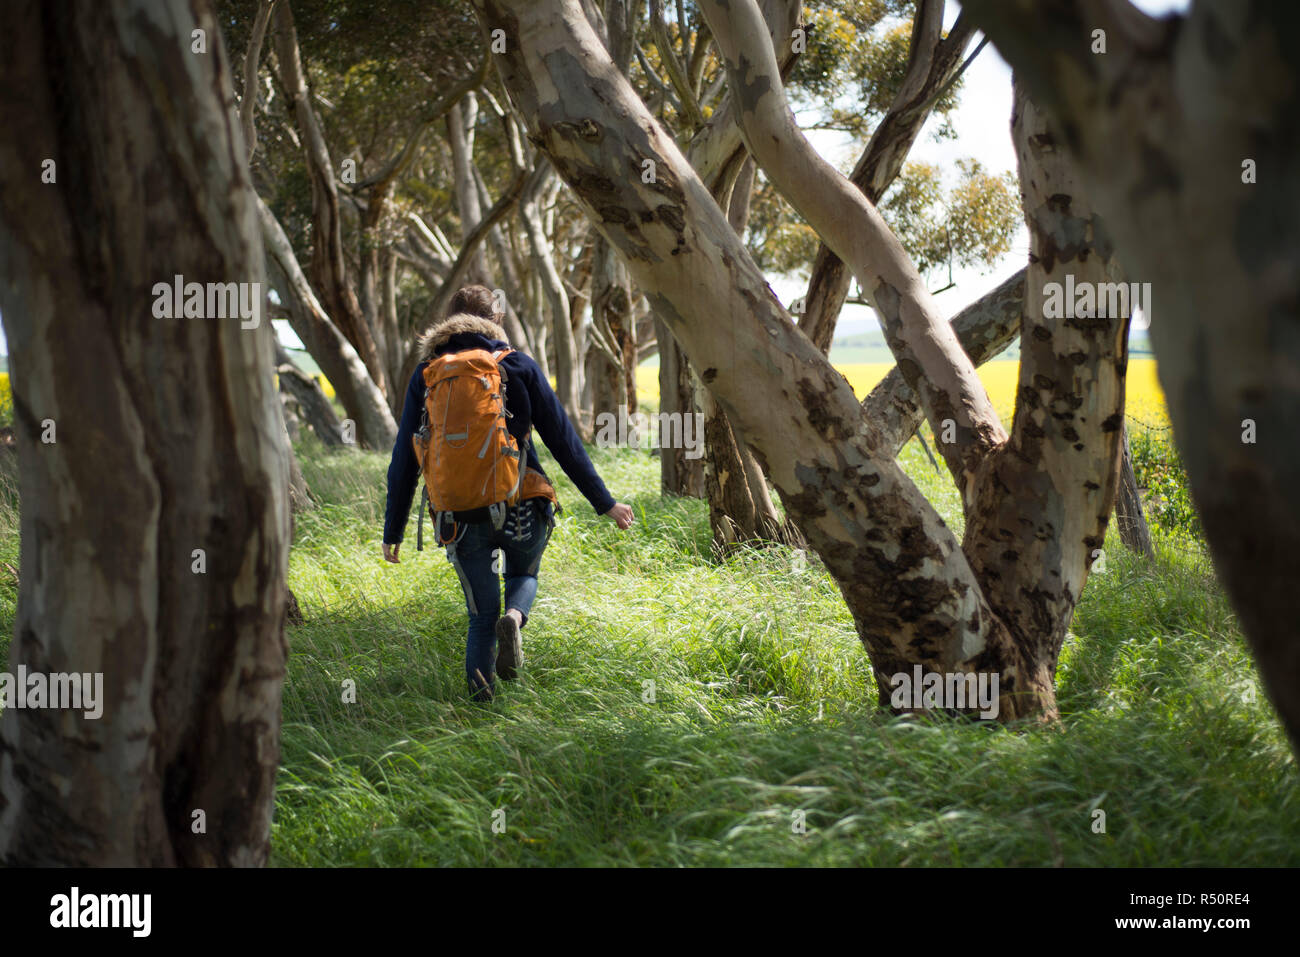 Female backpacker wandering around the forest - Stock Image